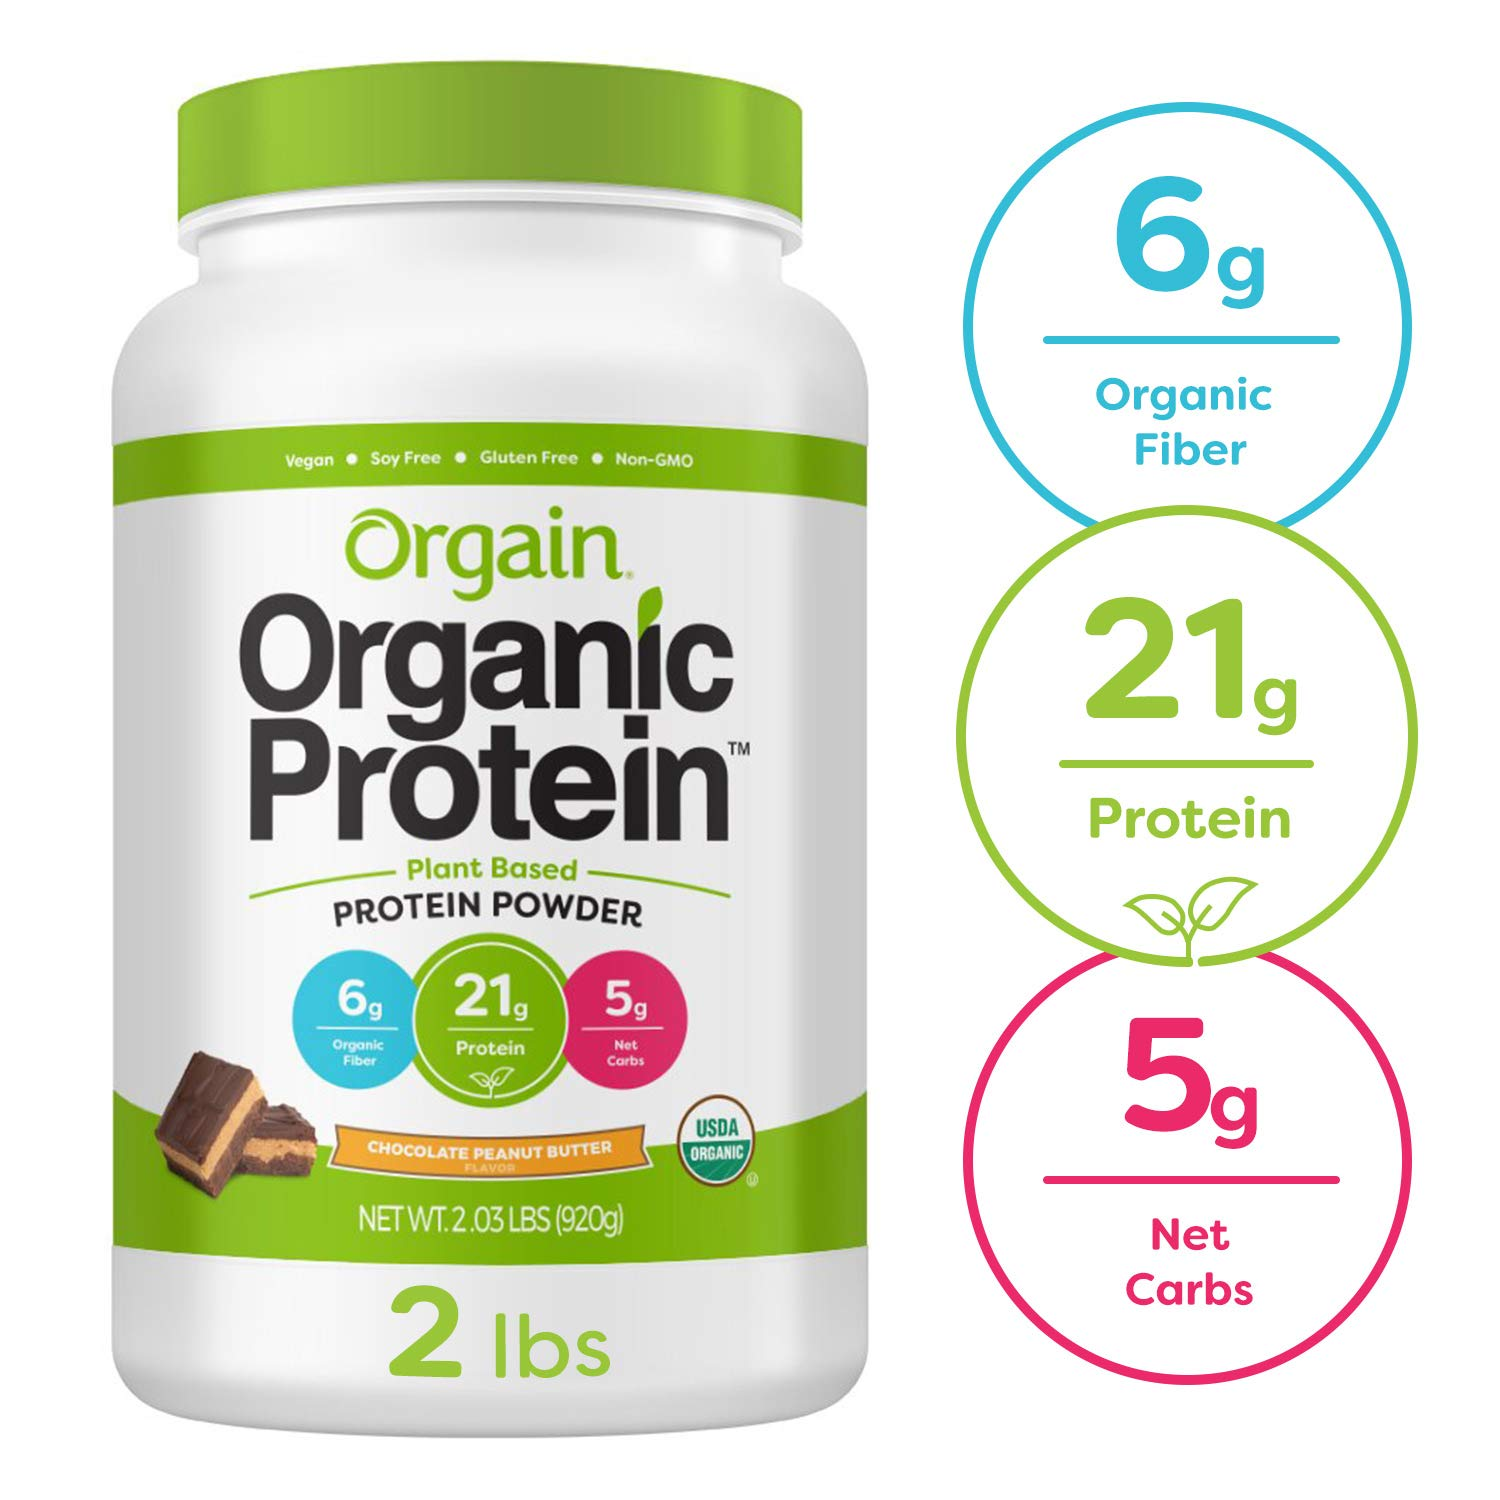 Orgain Organic Plant Based Protein Powder, Chocolate Peanut Butter - Vegan, Low Net Carbs, Non Dairy, Gluten Free, Lactose Free, No Sugar Added, Soy Free, Kosher, Non-GMO, 2.03 Pound by Orgain